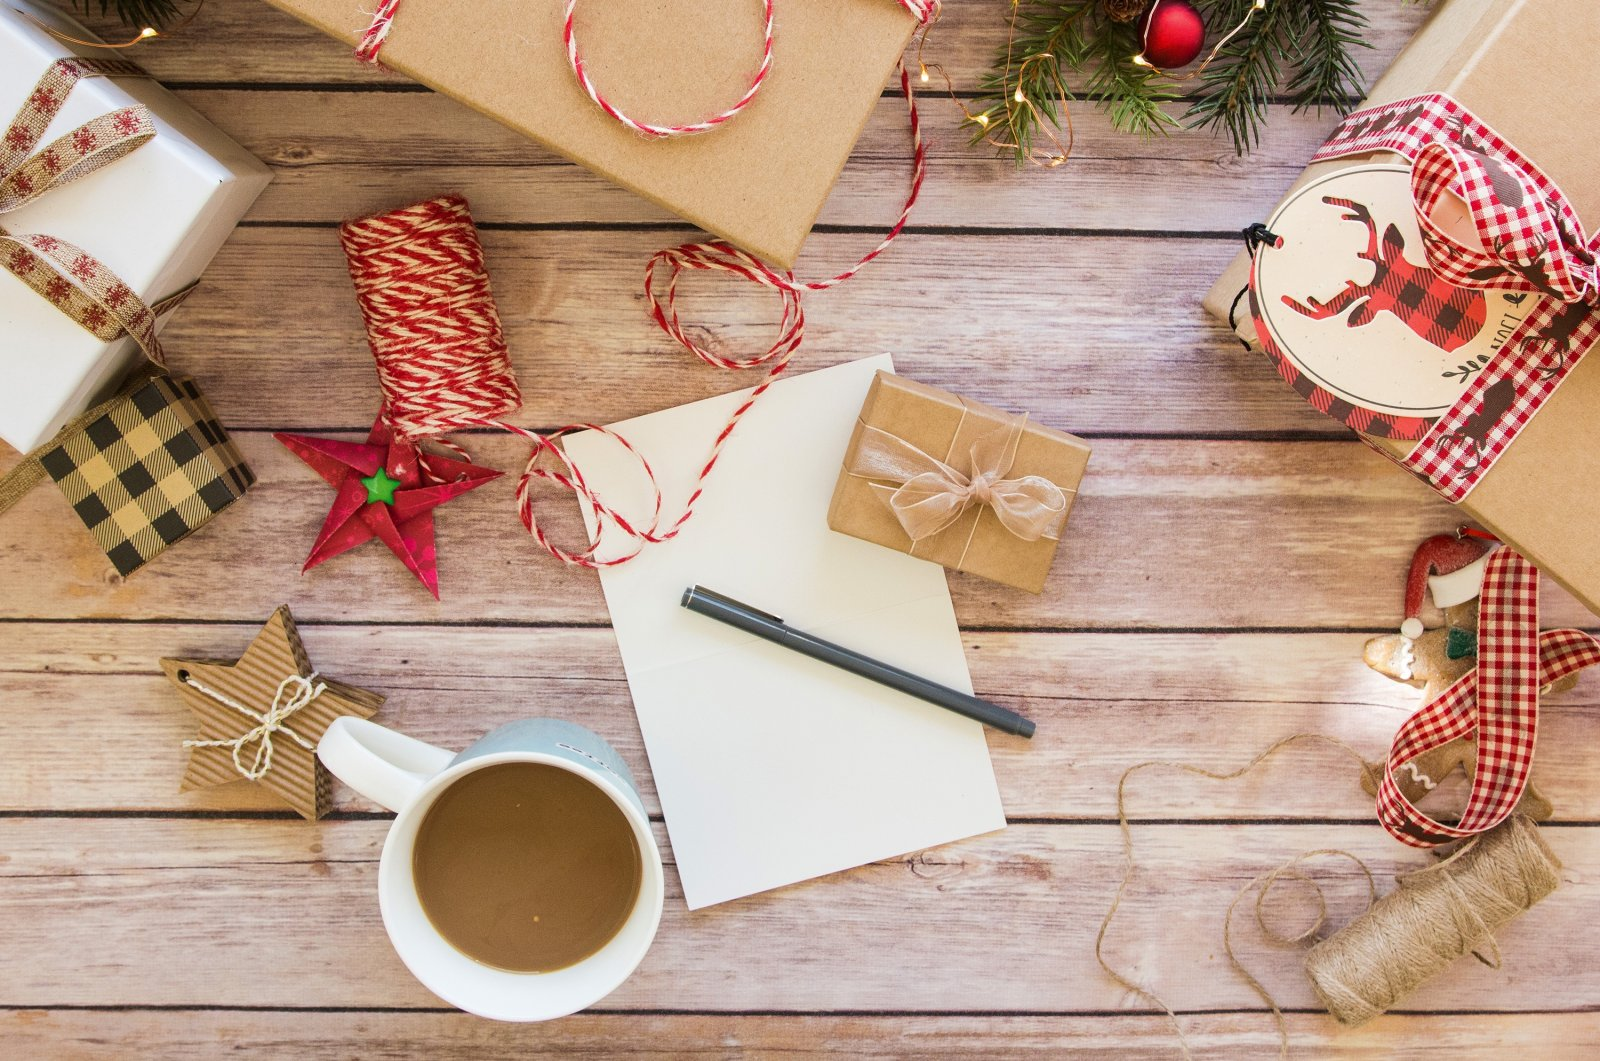 Sometimes the simplest and most practical gifts are the best, especially if they can be personalized. (Shutterstock Photo)